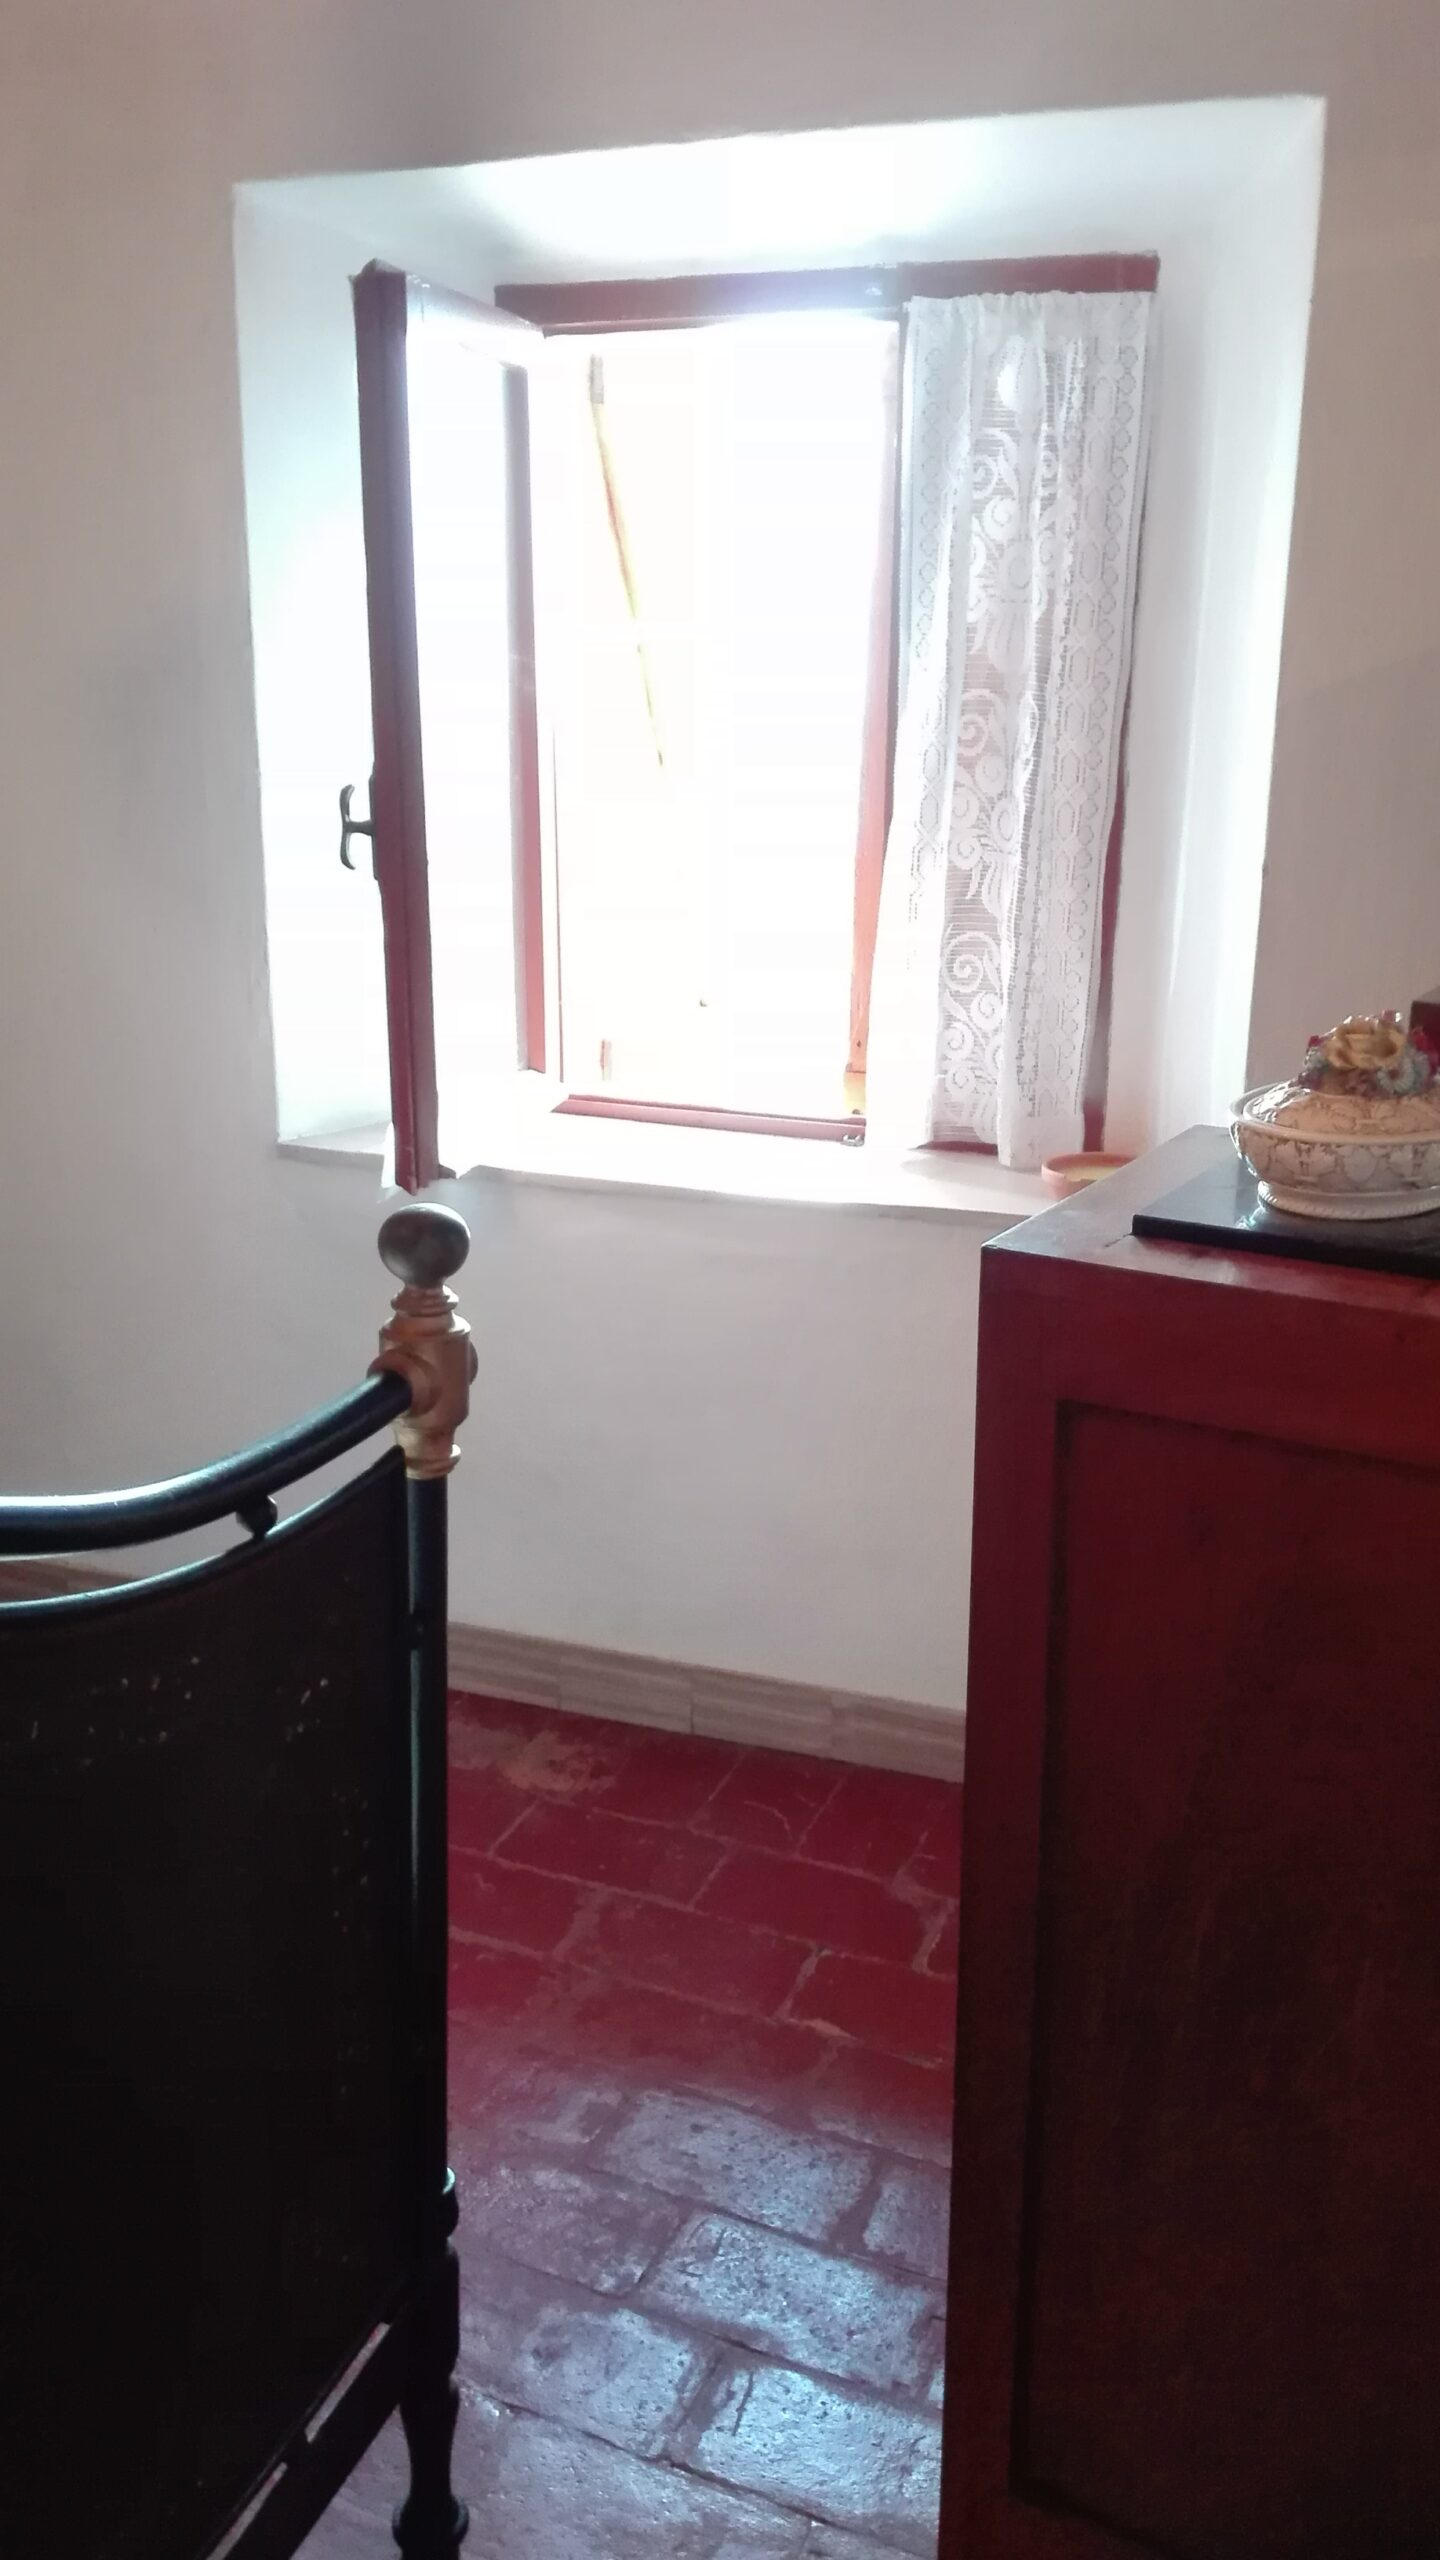 Great opportunity 30 minutes from the sea, house with panoramic terrace. ref. 2225